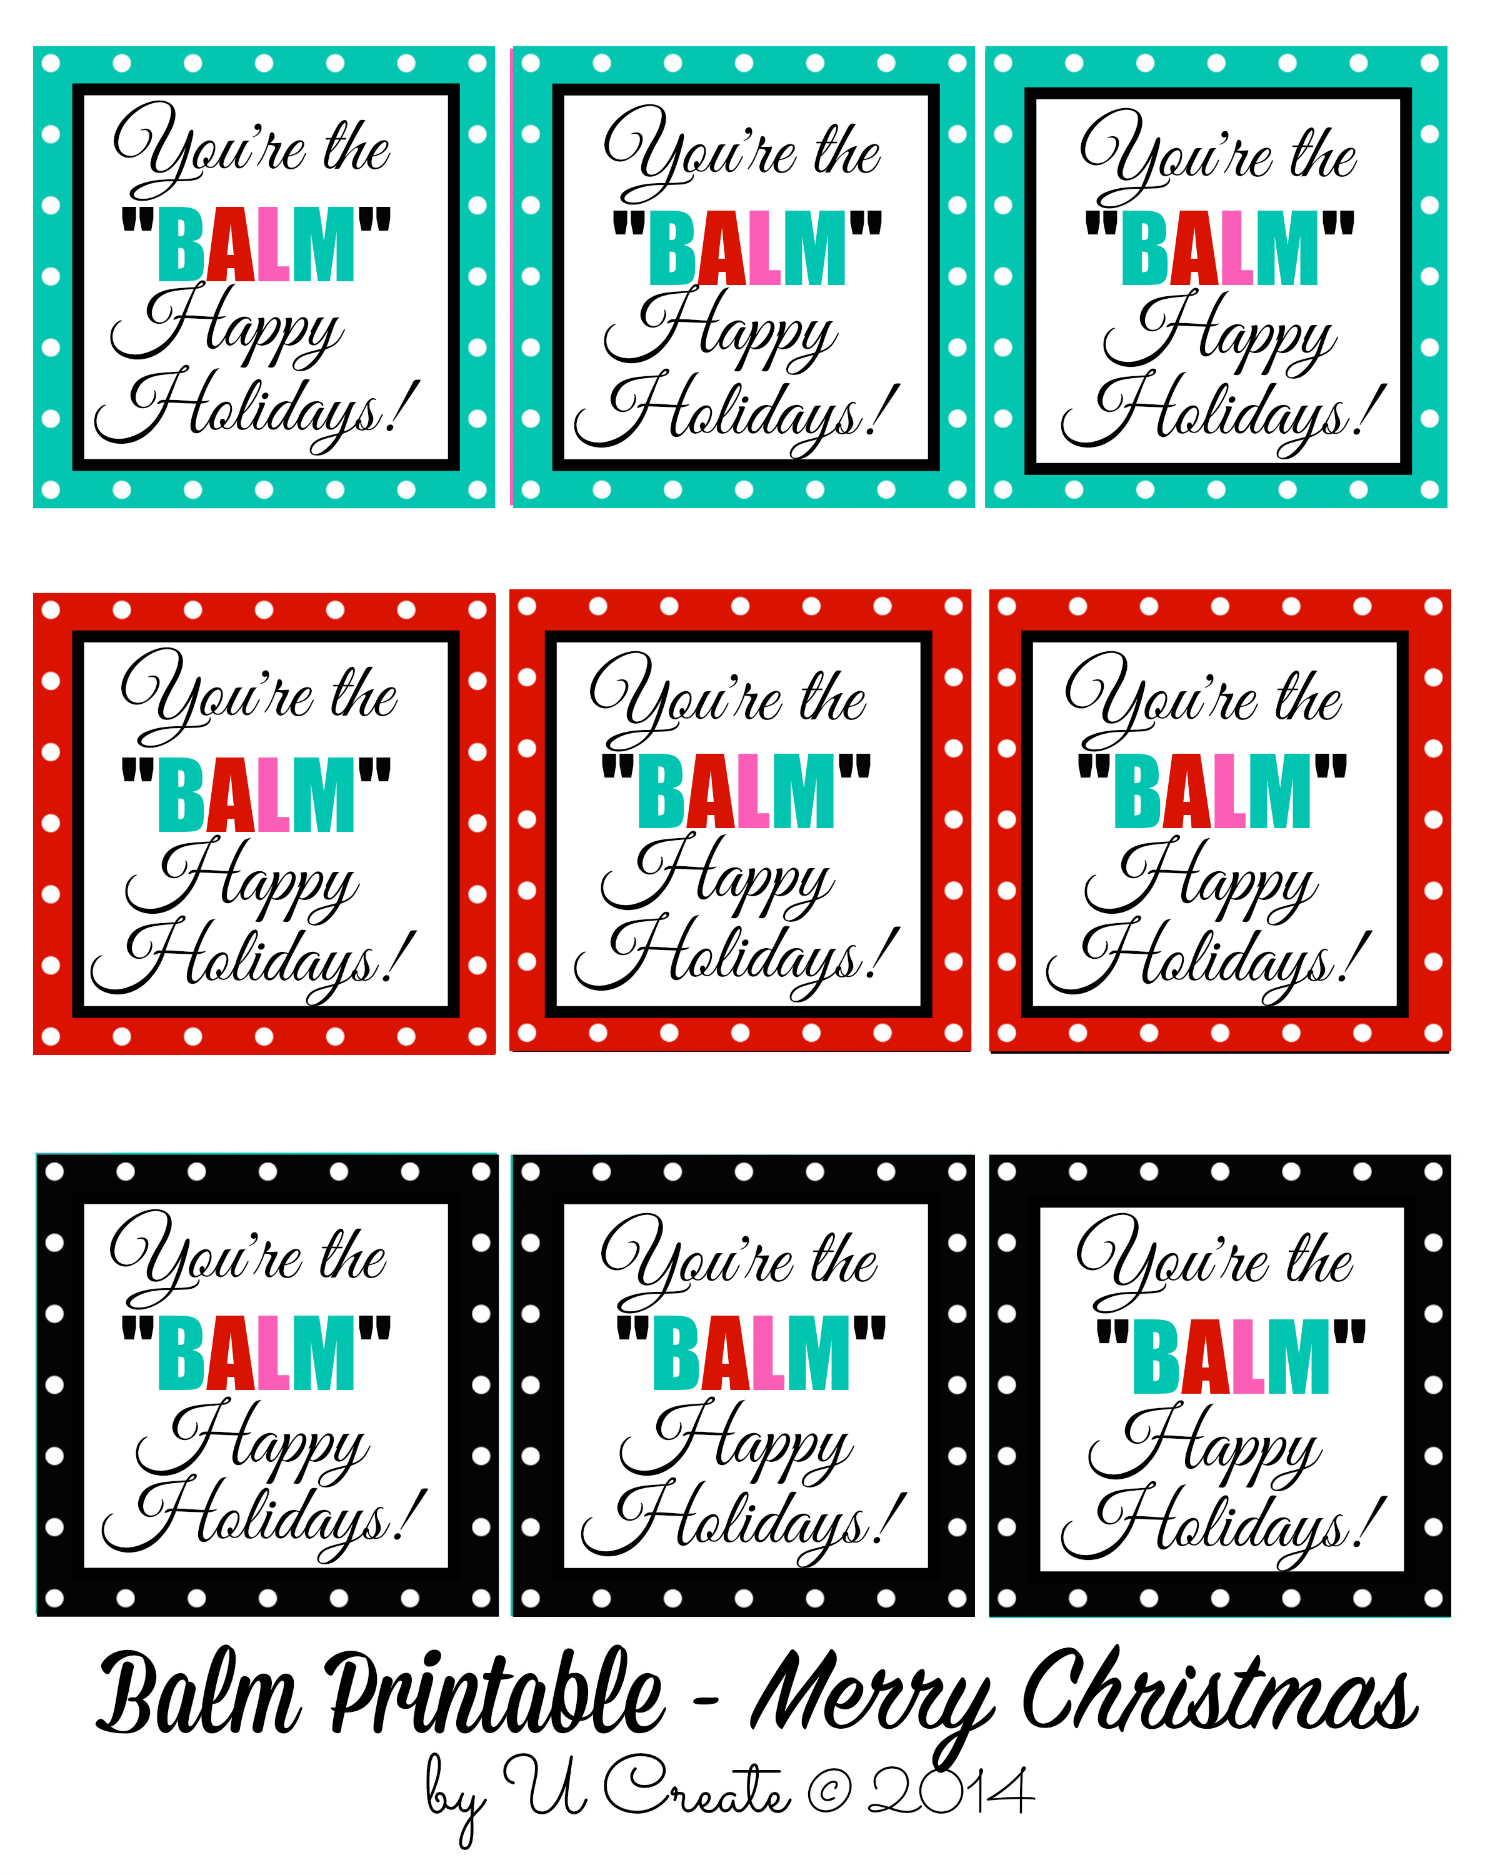 photo regarding You're the Balm Teacher Free Printable named Youre the BALM - Xmas Printables - U Produce